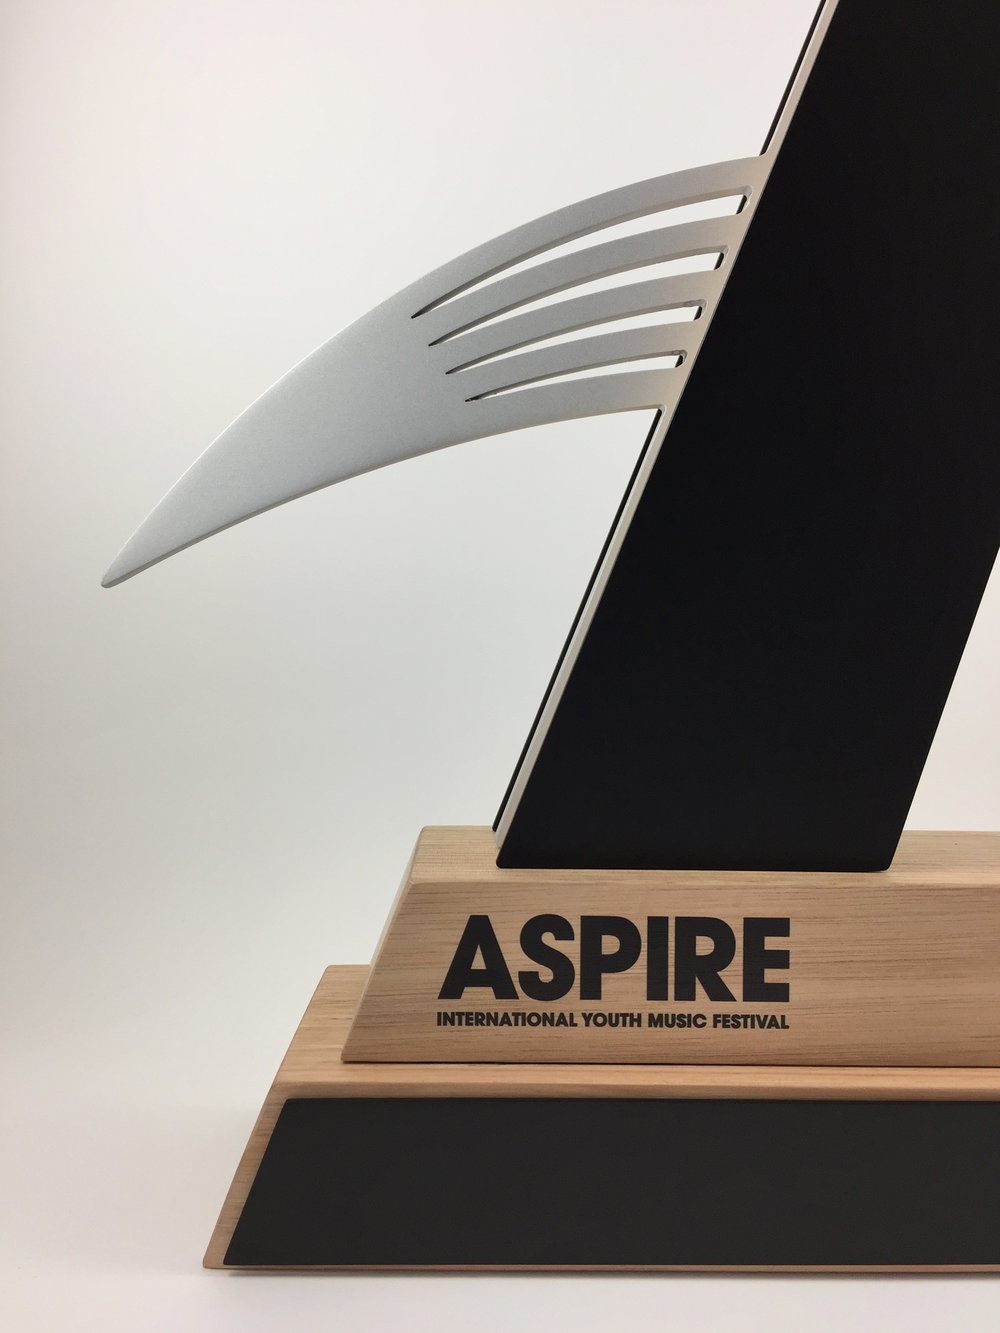 aspire-timber-metal-eco-trophy-awards-06.jpg